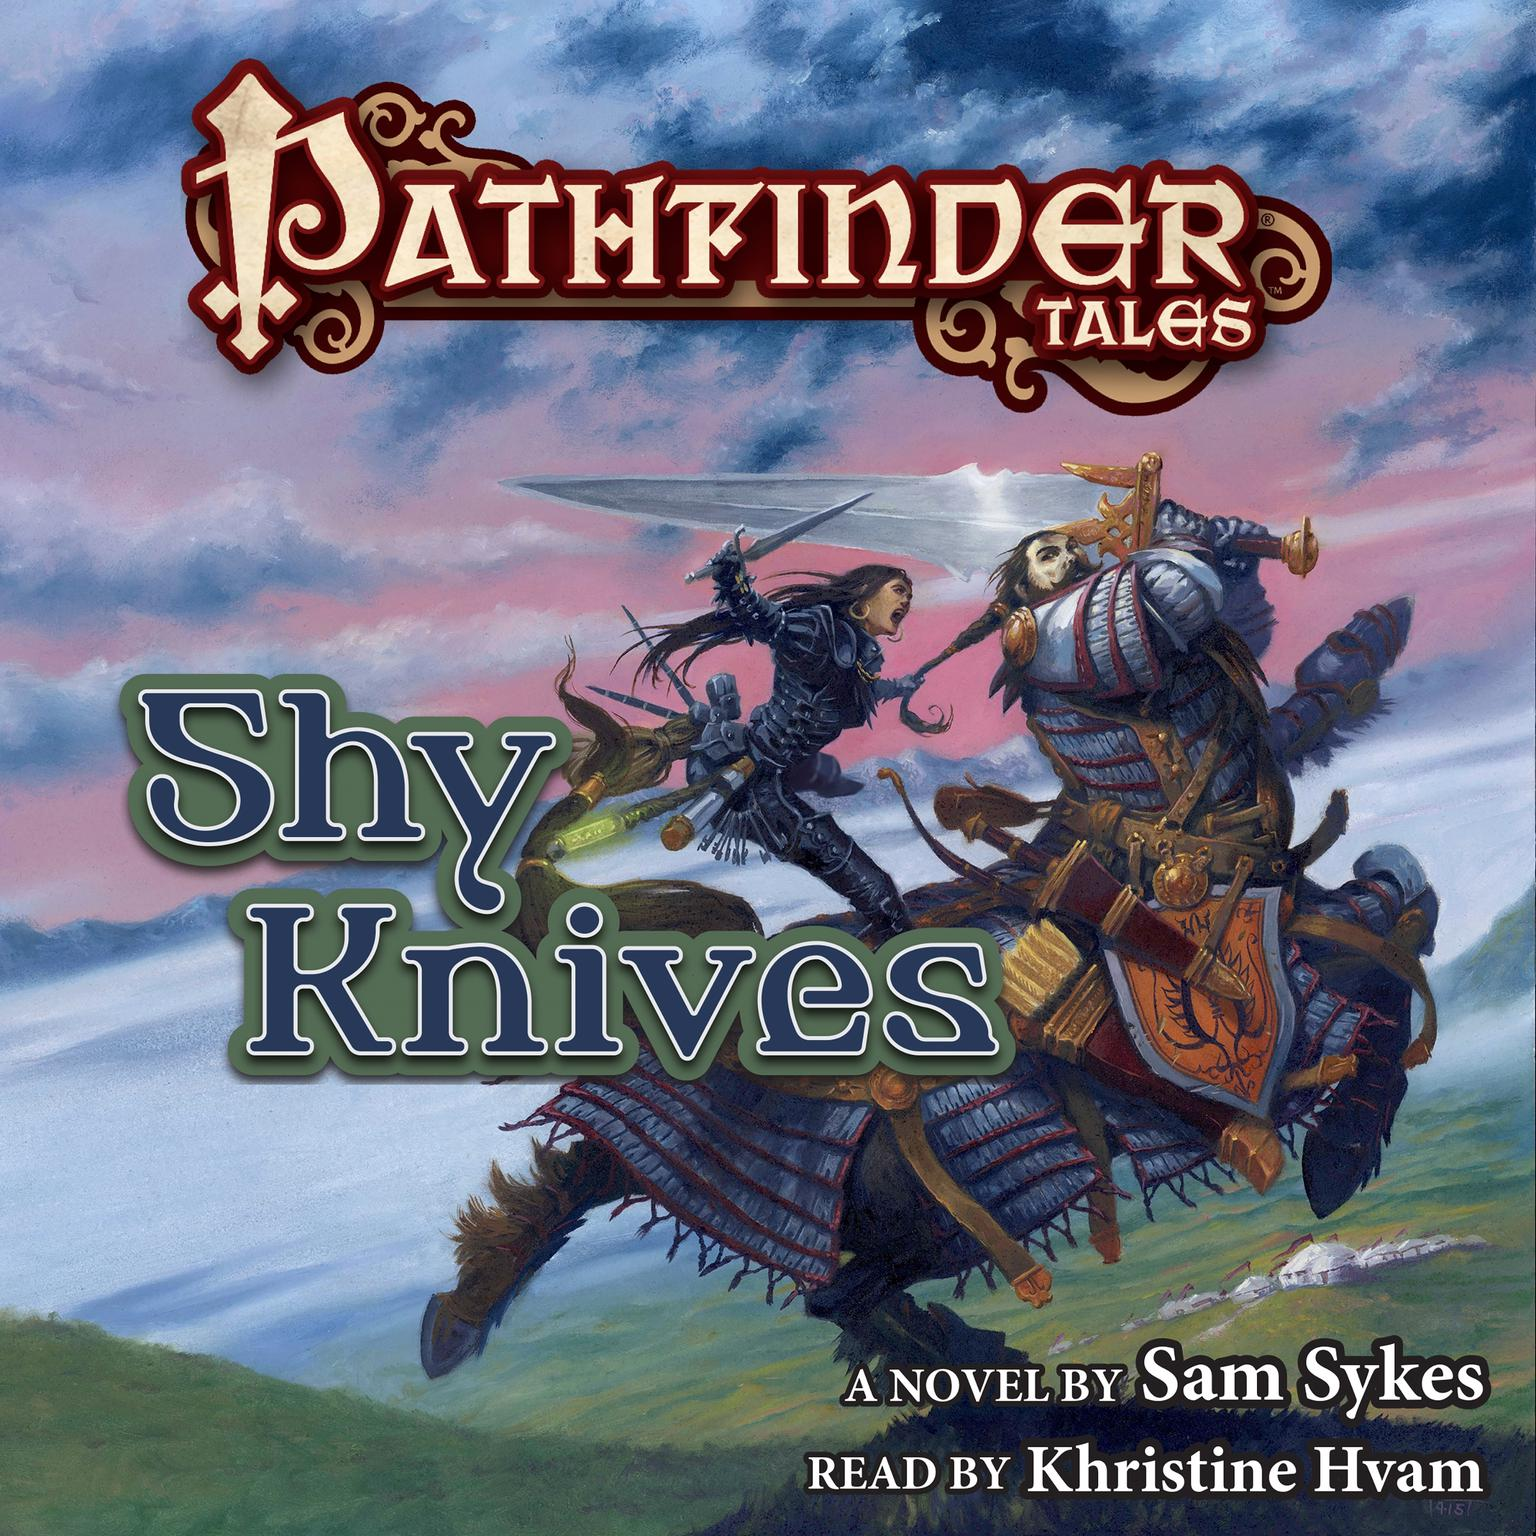 Printable Pathfinder Tales: Shy Knives Audiobook Cover Art